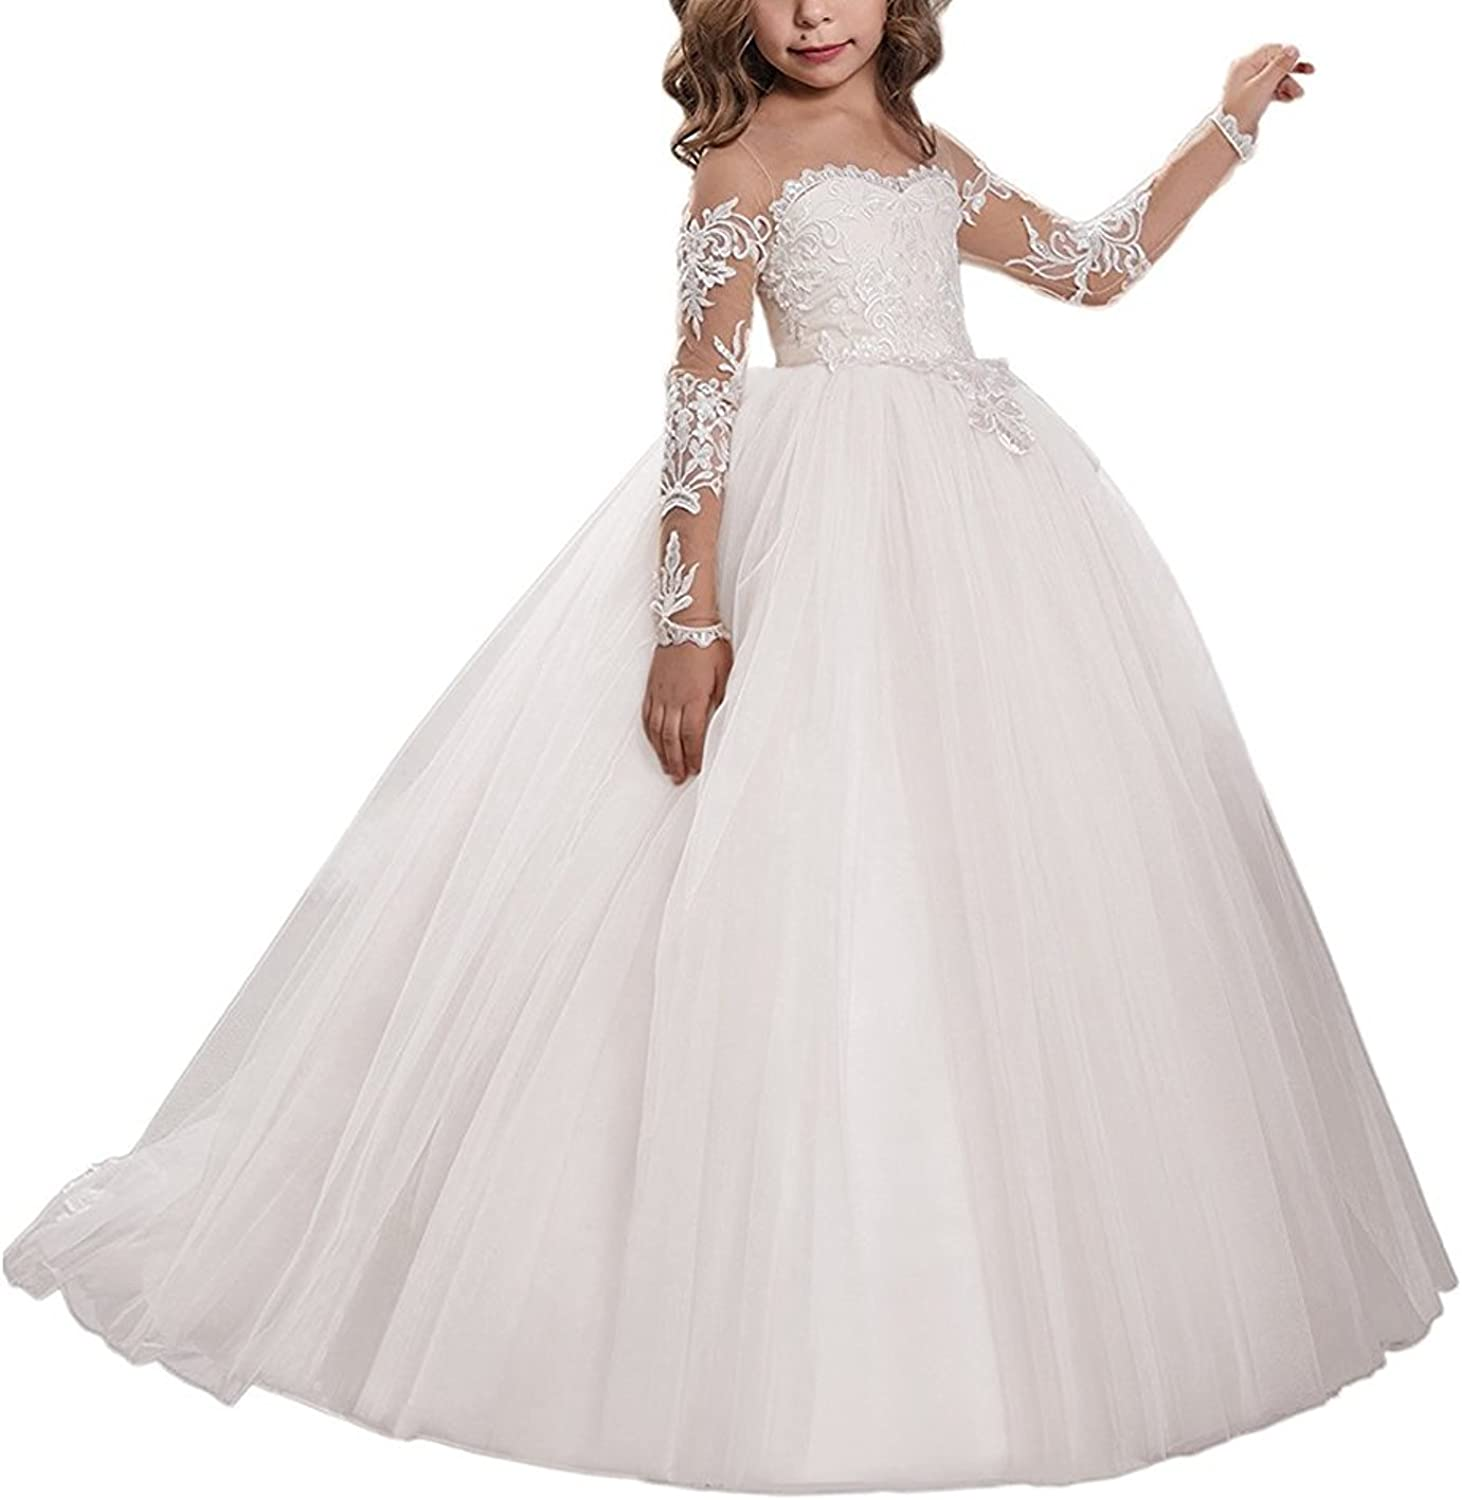 Amazon.com: Gzcdress Long Sleeve Puffy First Communion Dresses